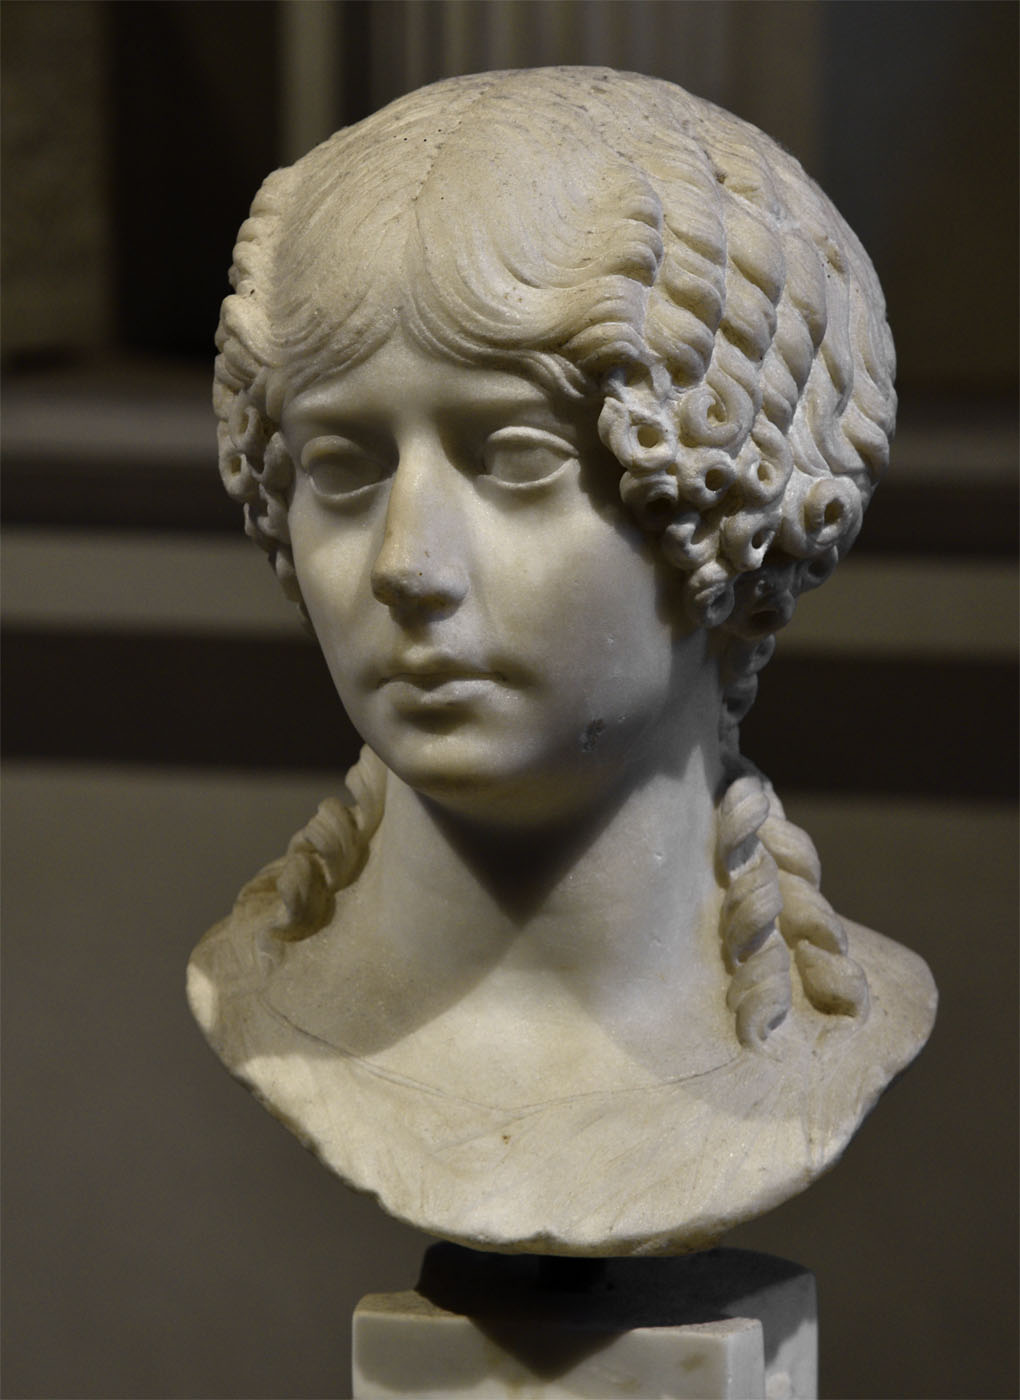 Portrait of Minatia Polla. Marble. Ca. 40 CE. Inv. No. 1043. Rome, Roman National Museum, Baths of Diocletian, Aula X